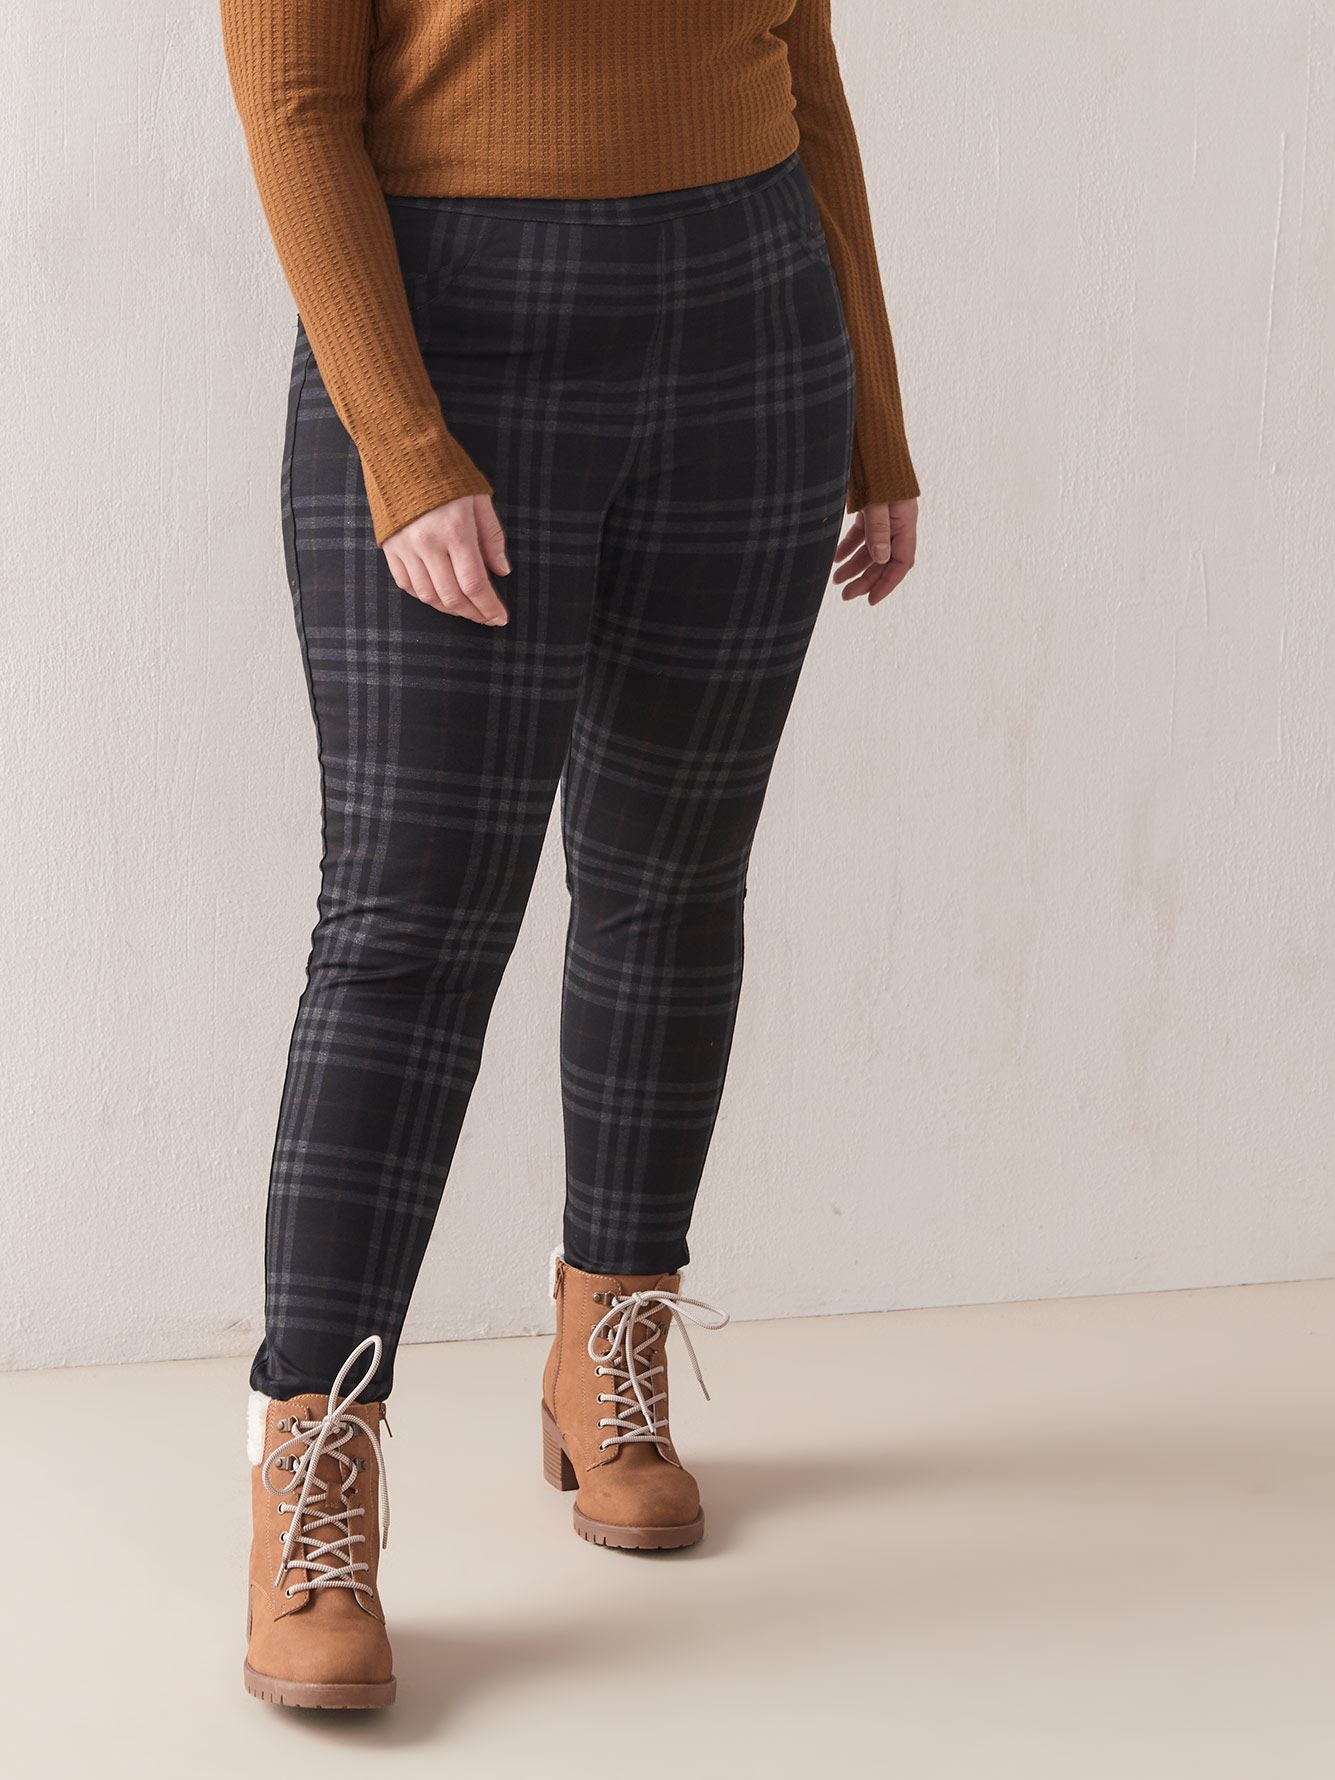 Grease Plaid Legging - Sanctuary